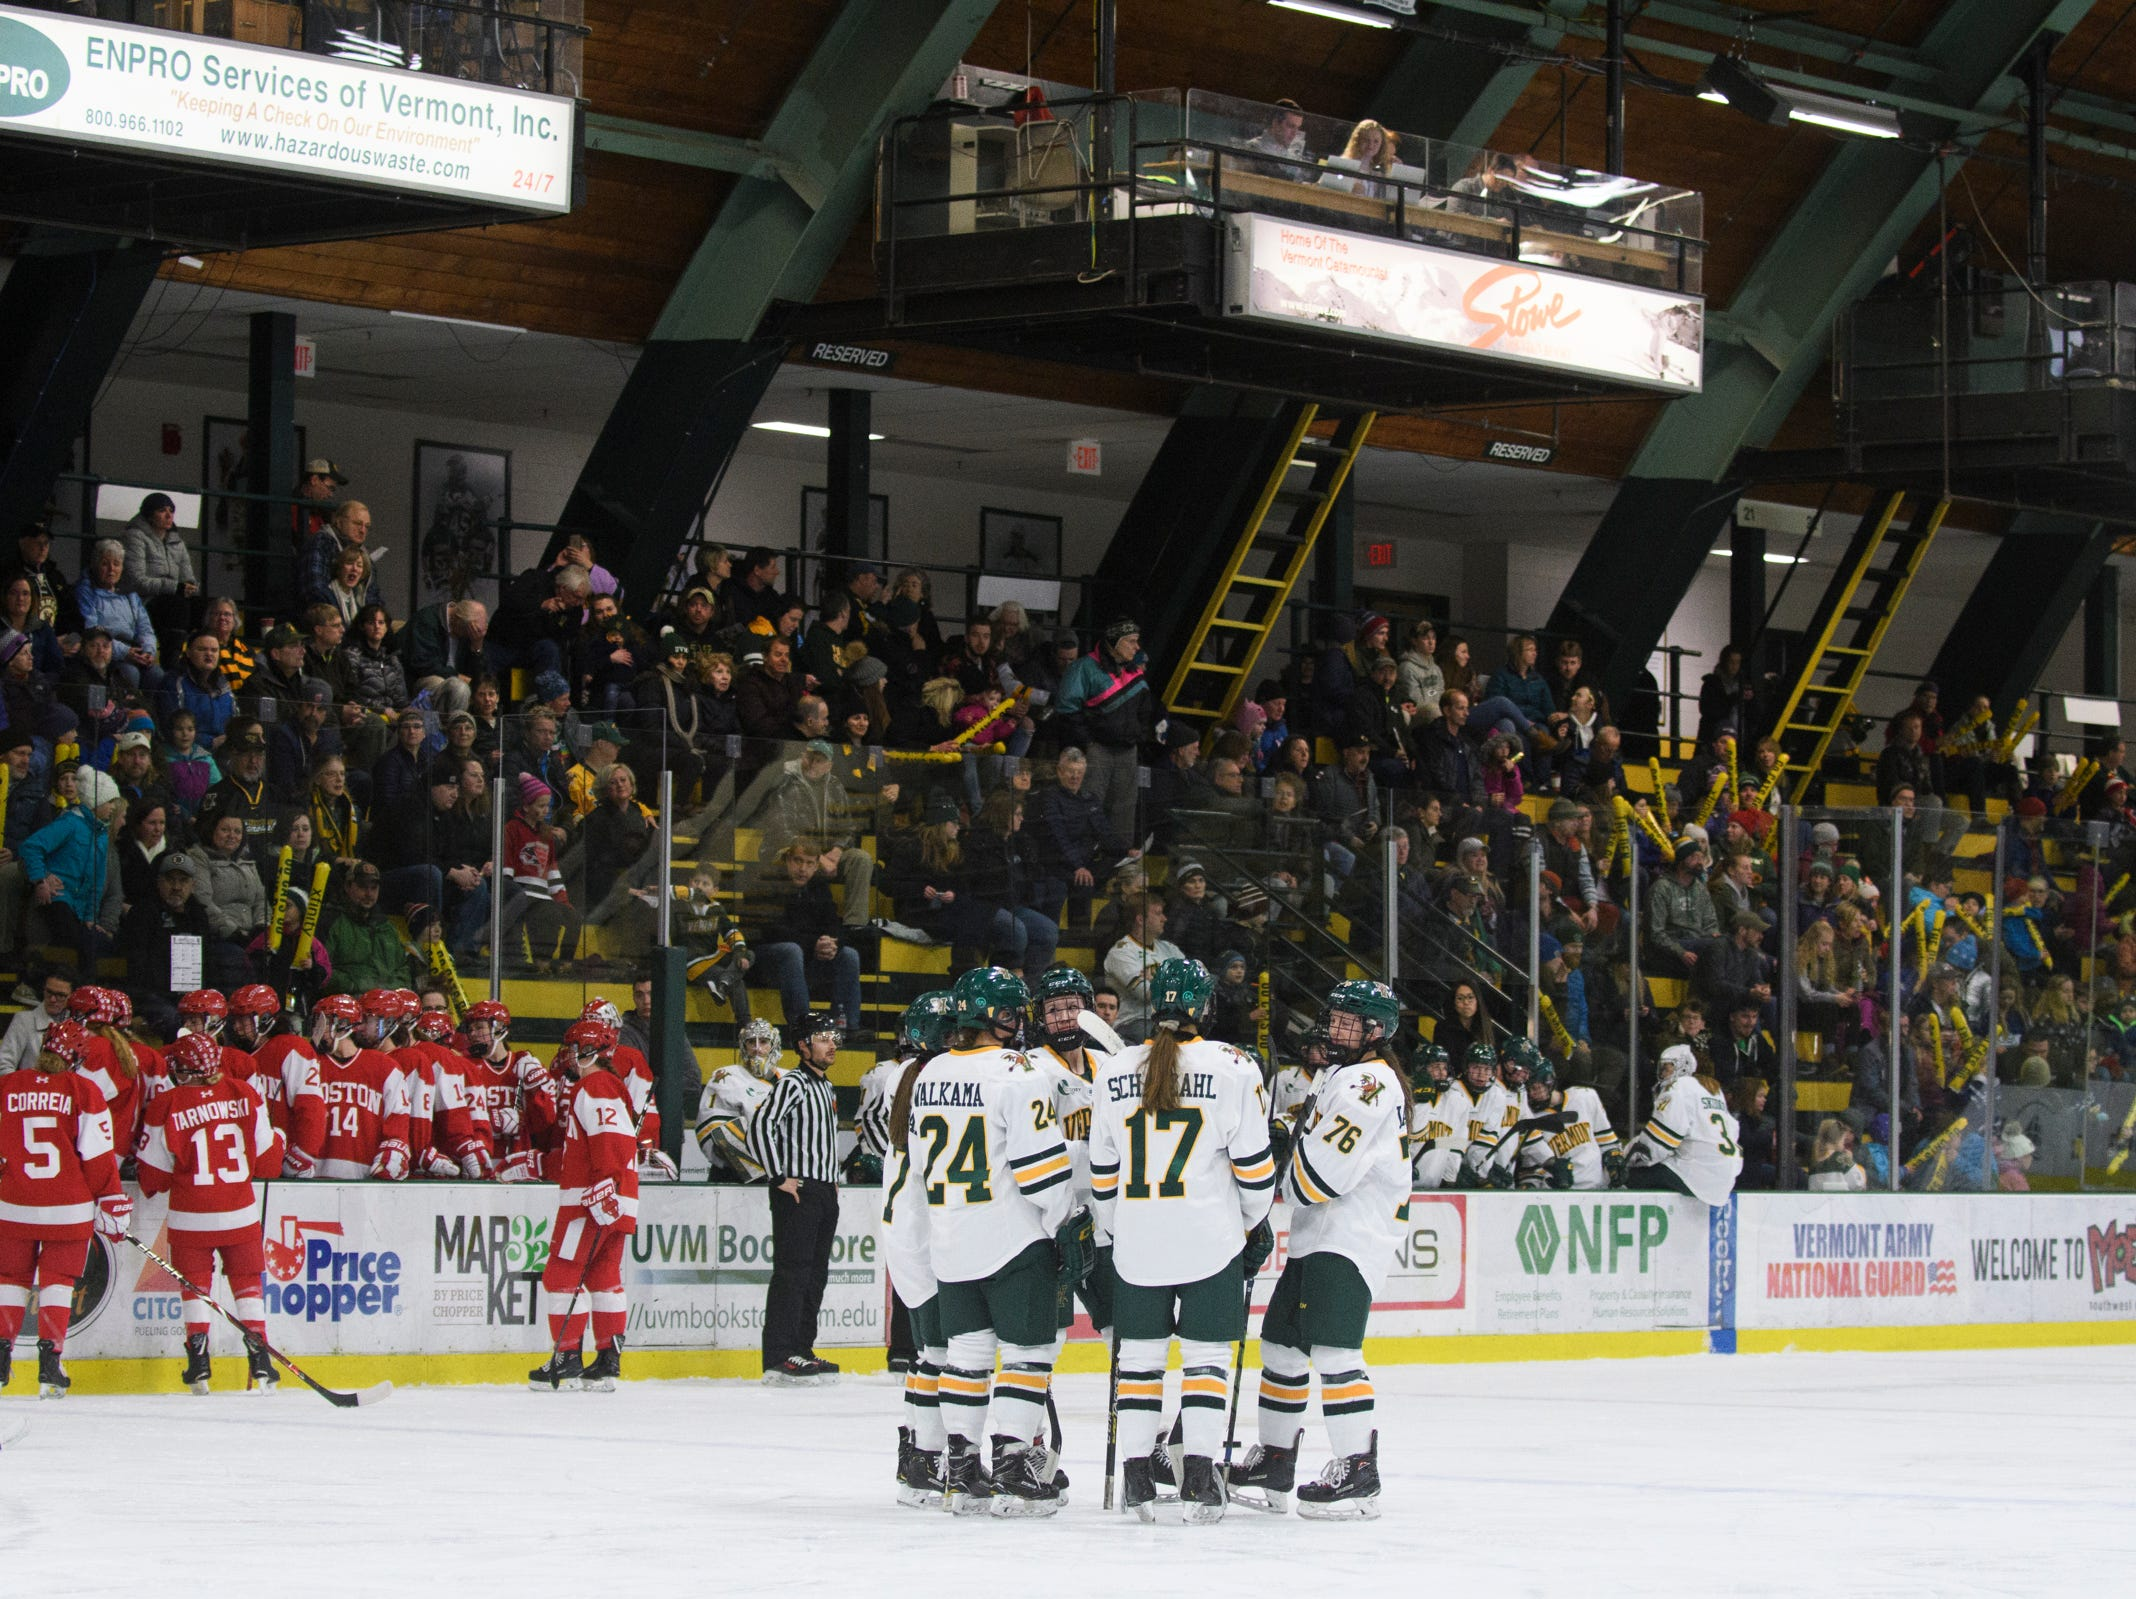 Vermont huddles together on the ice during the women's hockey game between the Boston Terriers and the Vermont Catamounts at Gutterson Field House on Friday night February 1, 2019 in Burlington, Vermont.